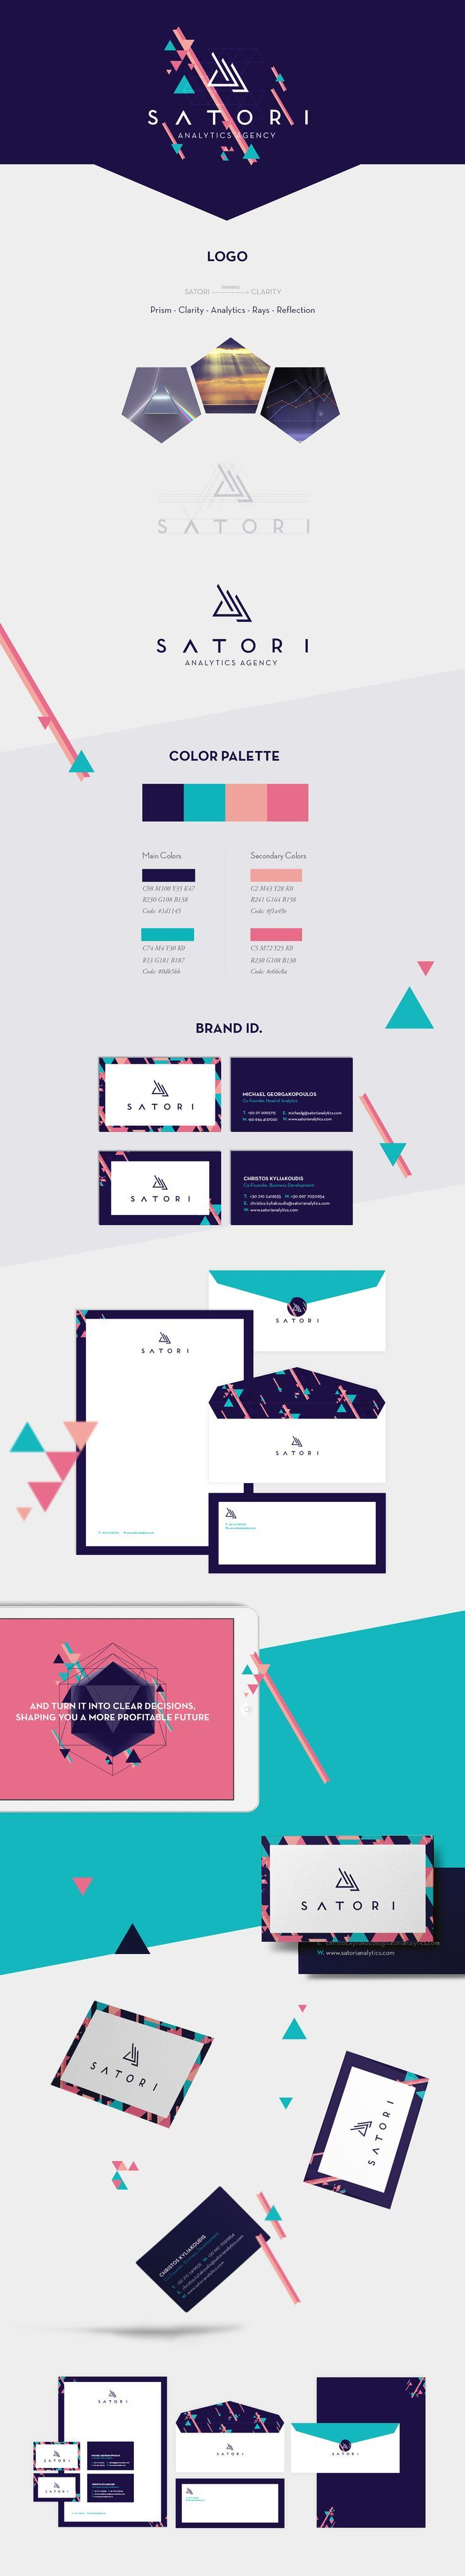 Colorful branding